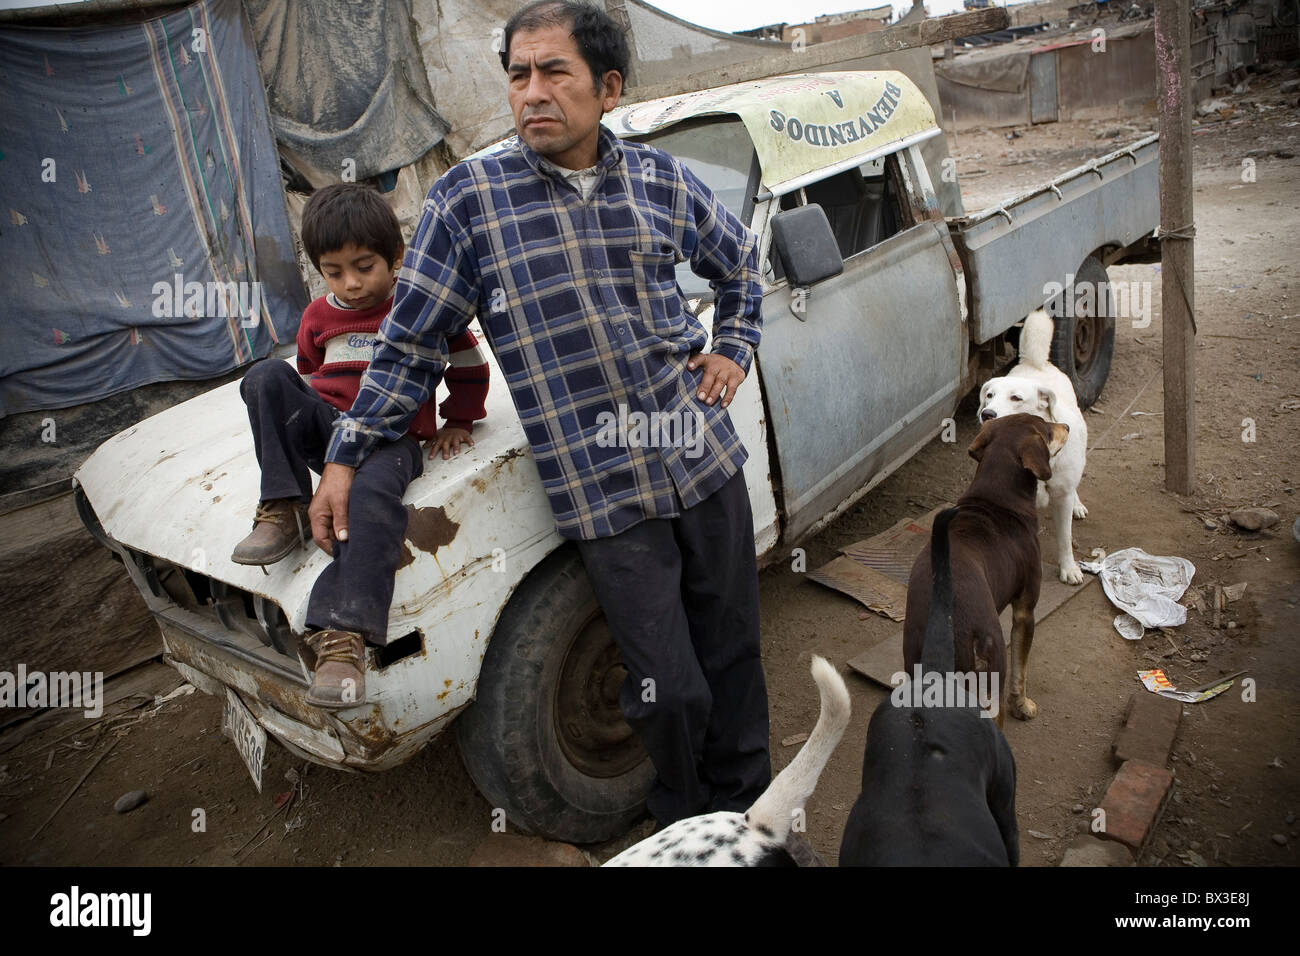 Man and his child with a truck outside their house. Villa el Salvador, Lima, Peru. - Stock Image